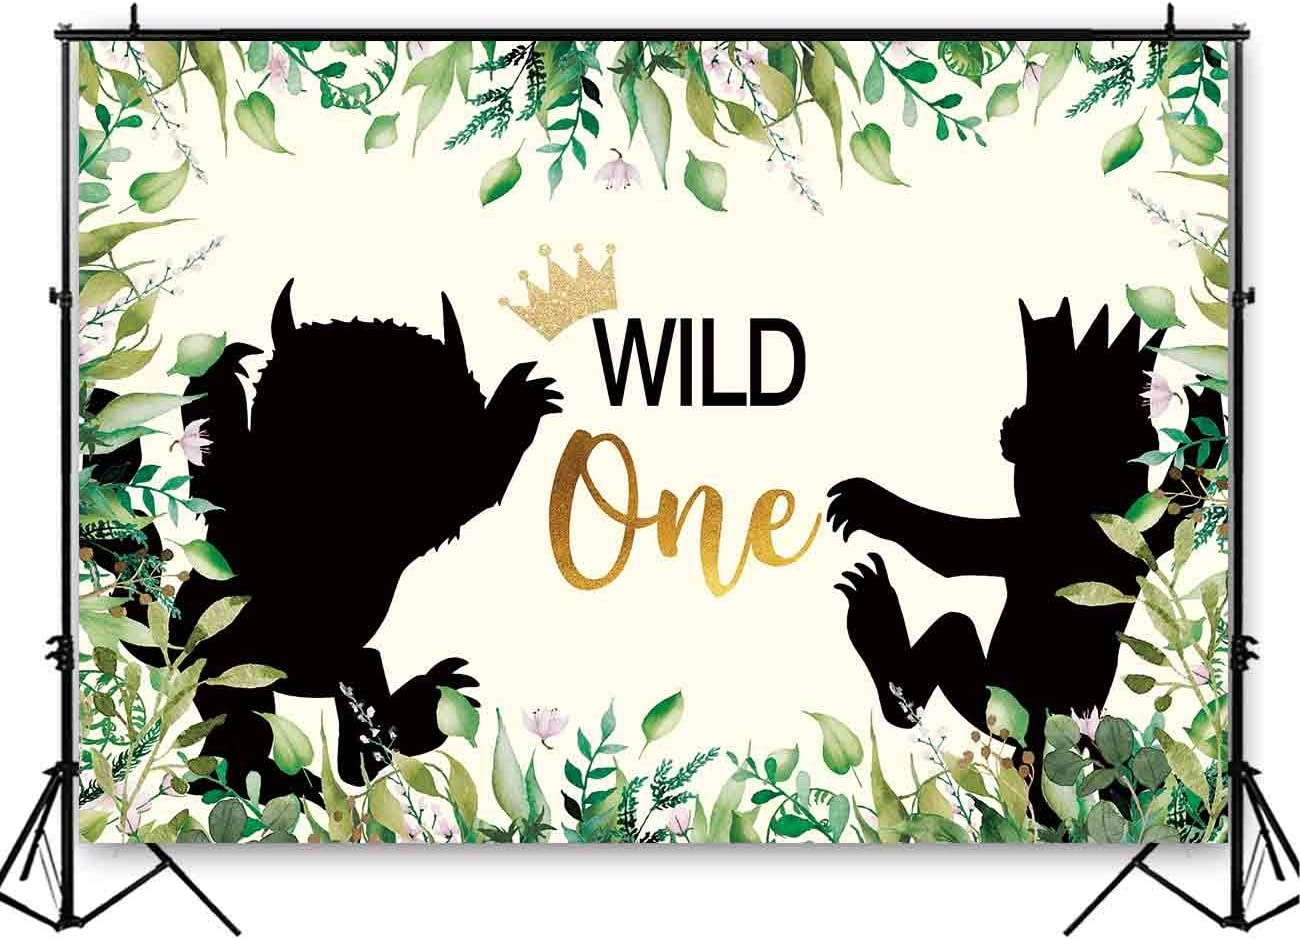 Funnytree 8x6ft Durable Fabric Wild 1st One Backd Party Birthday Online limited product Popular standard